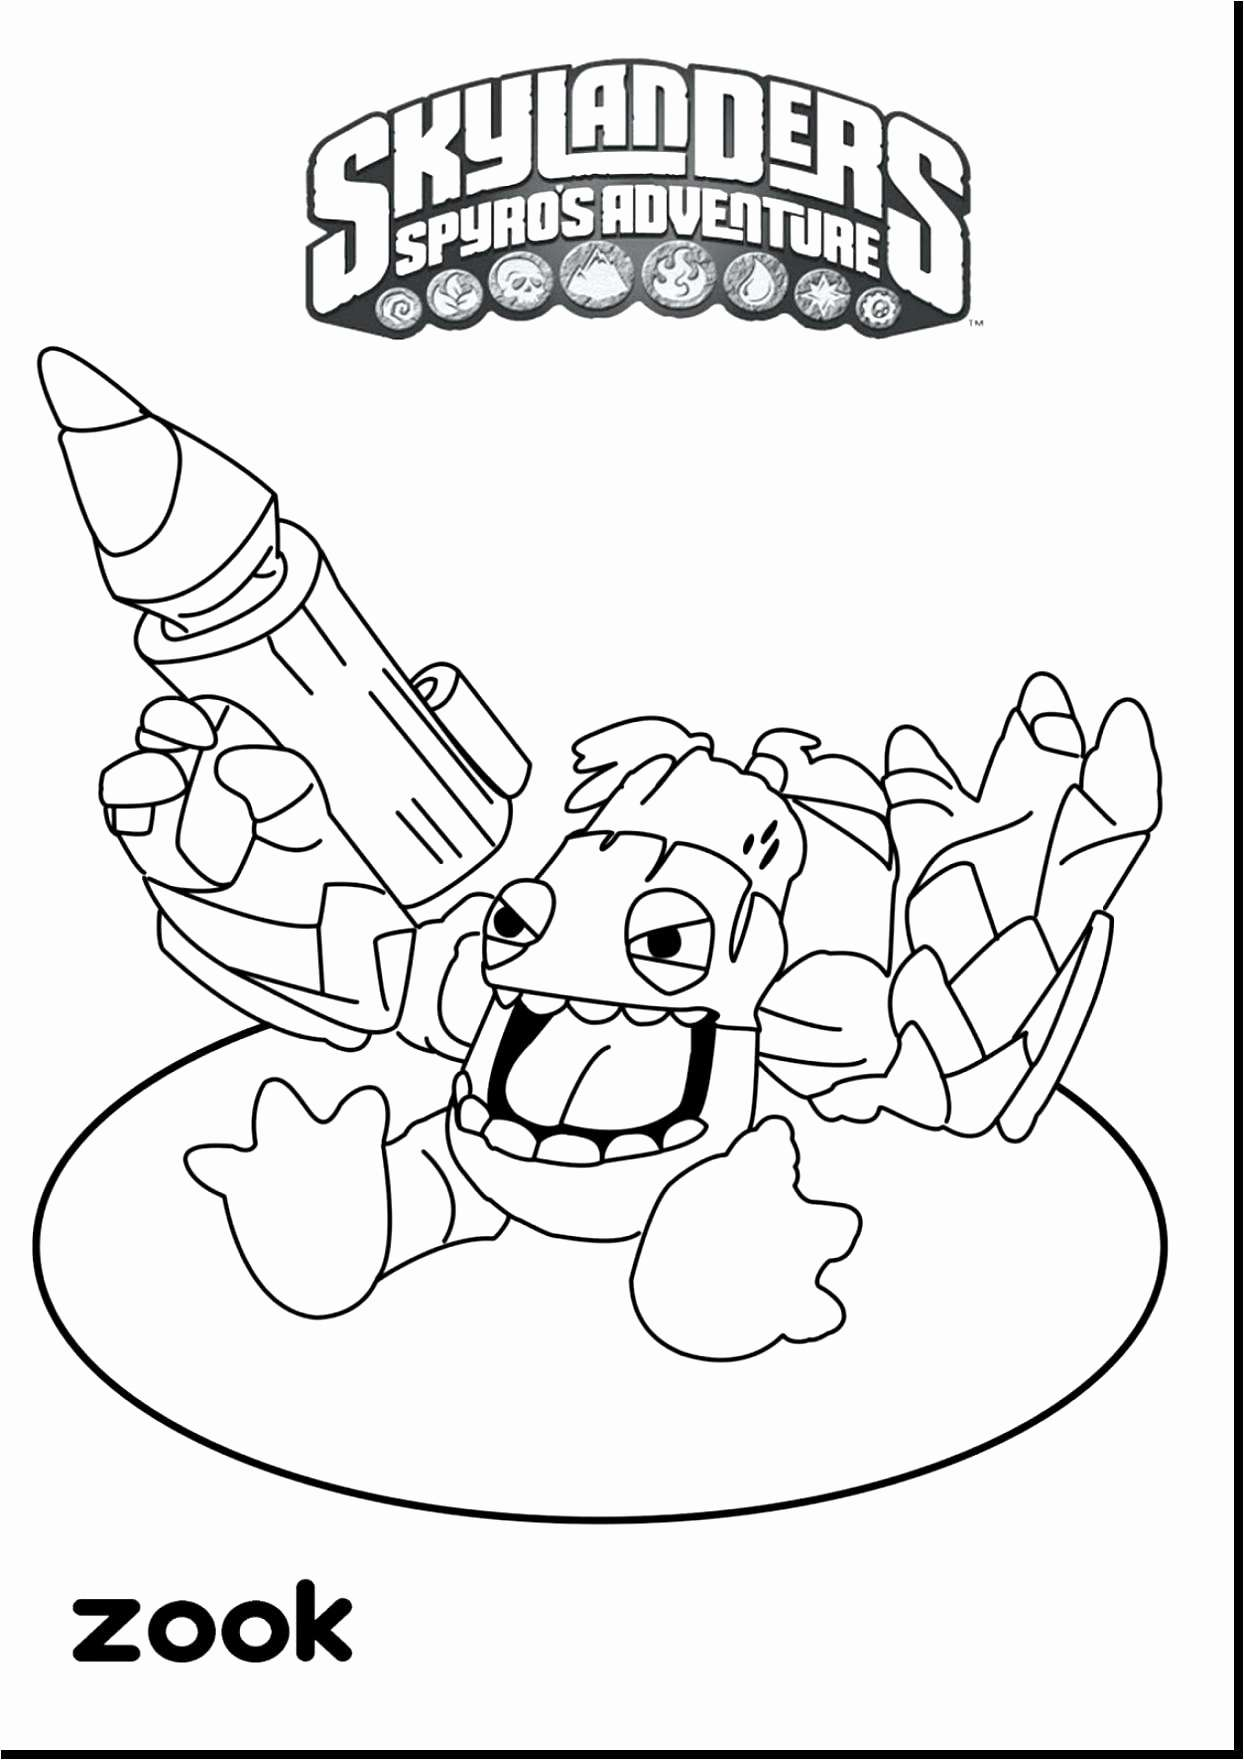 Christmas Coloring Pages Free To Print With Mario Color Printable Page